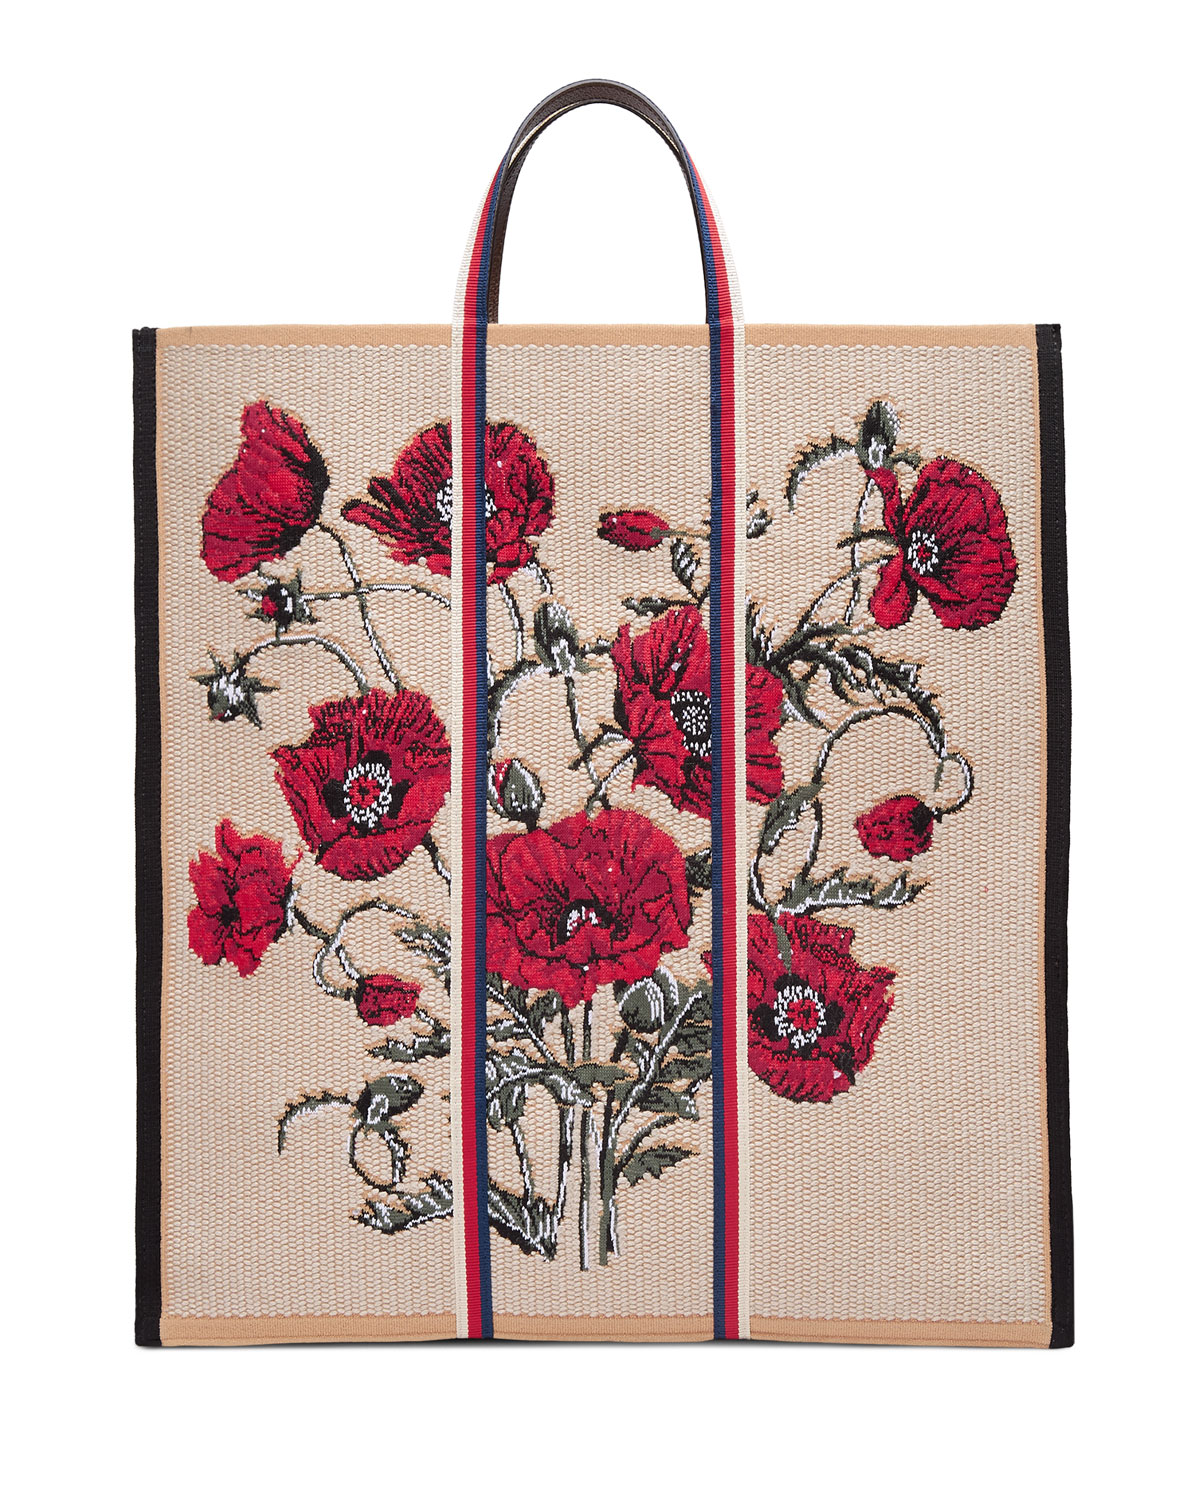 933534a01889 Gucci Floral-Embroidered Woven Tote Bag   Neiman Marcus